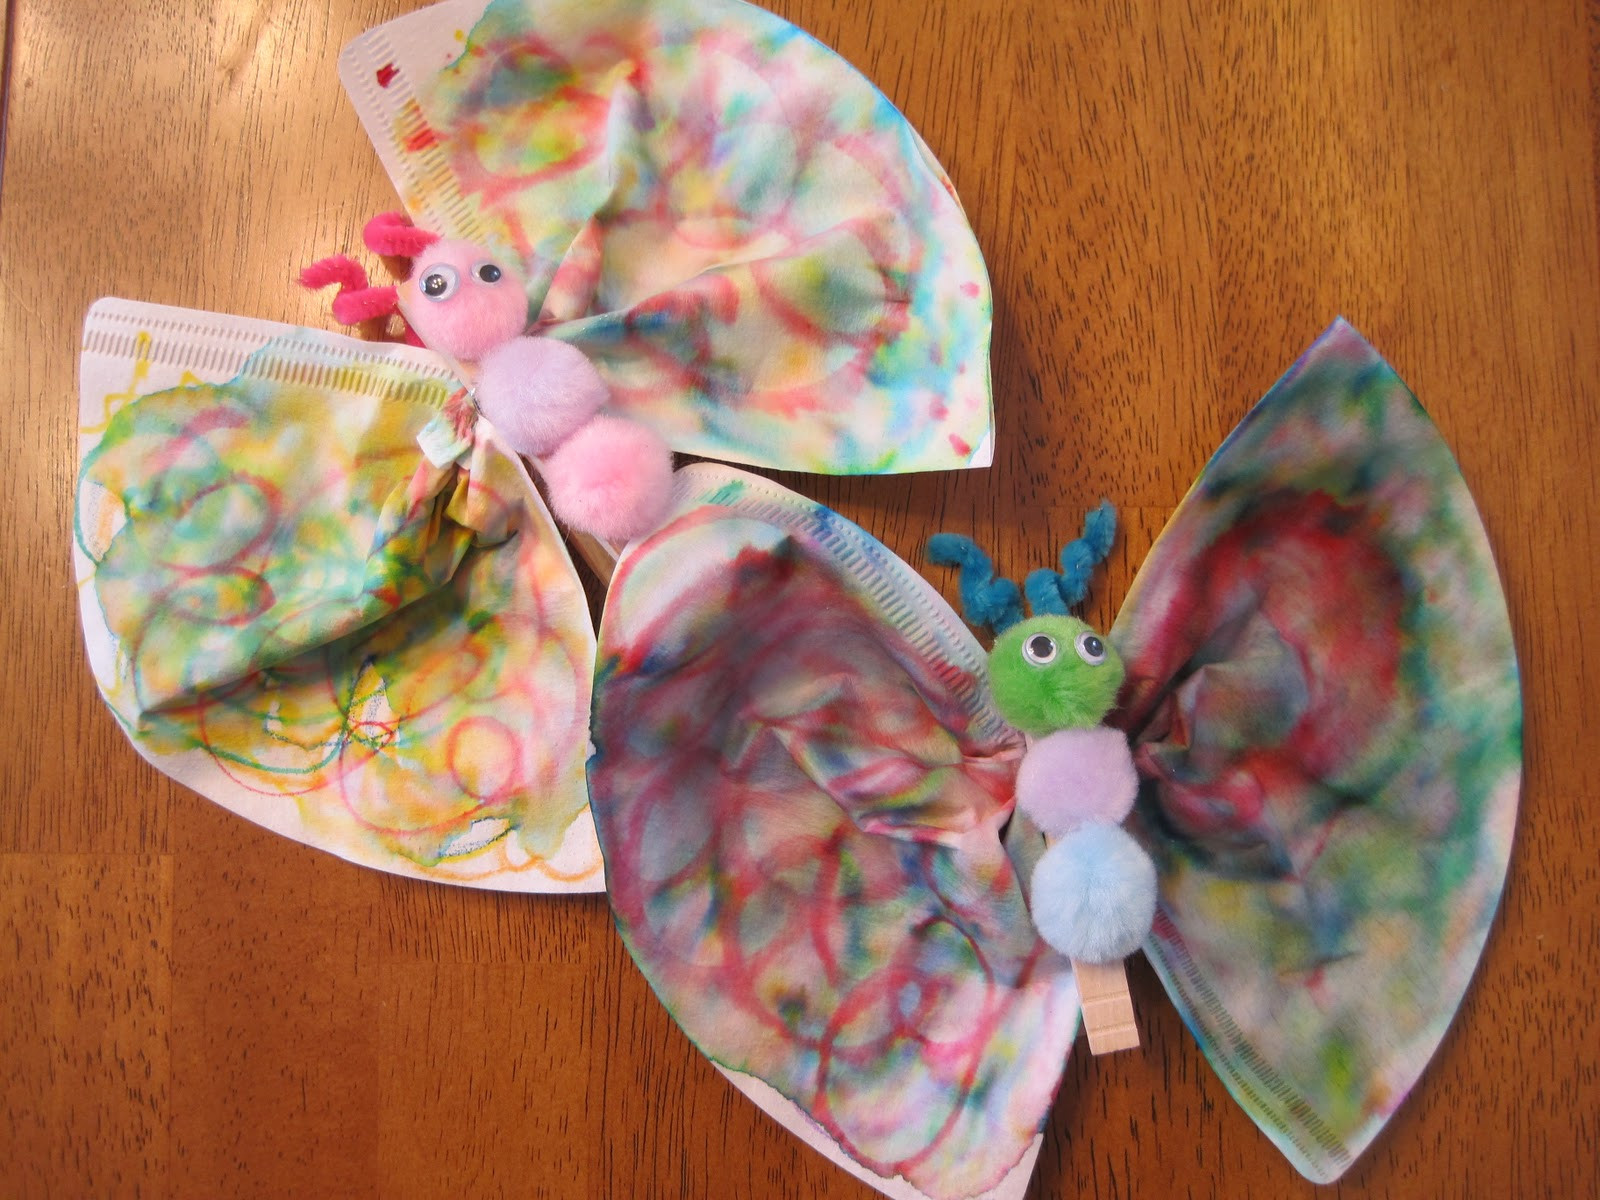 Best ideas about Easy Spring Crafts For Preschoolers . Save or Pin Savvy Spending Easy Spring Craft for preschoolers Now.